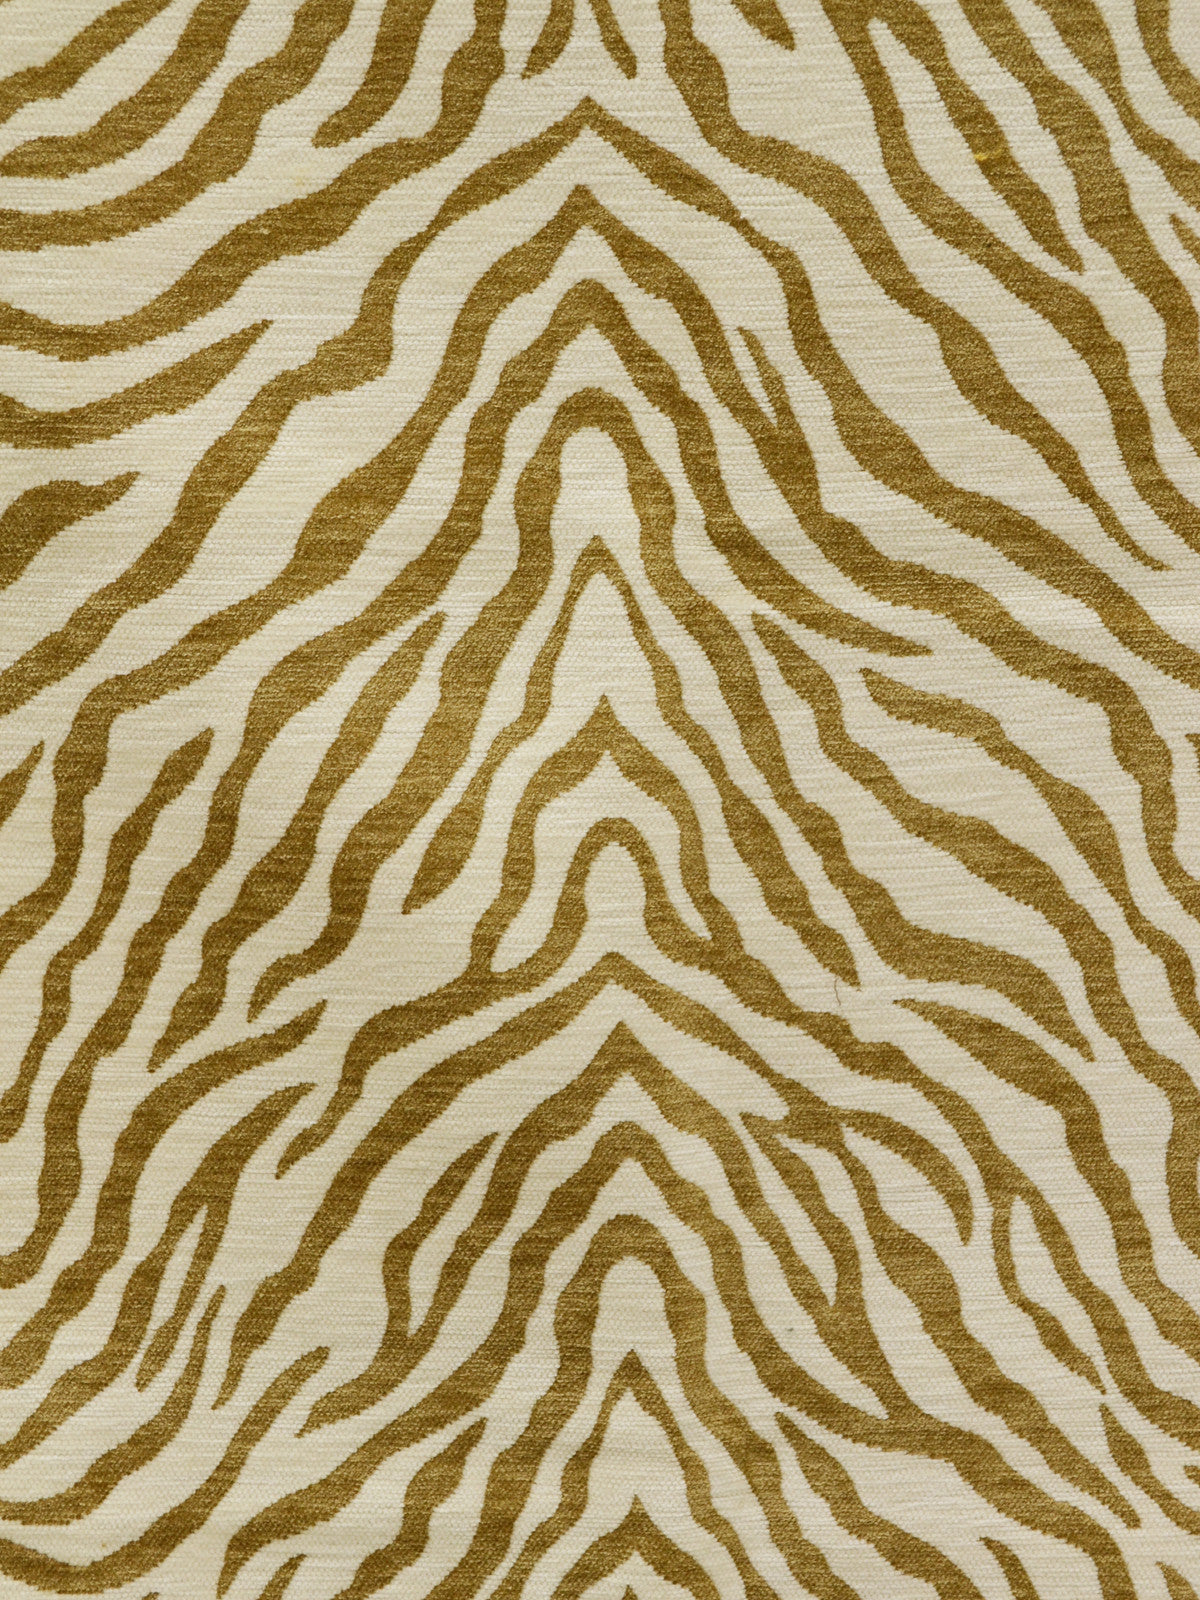 animal skins, animal print, home decor